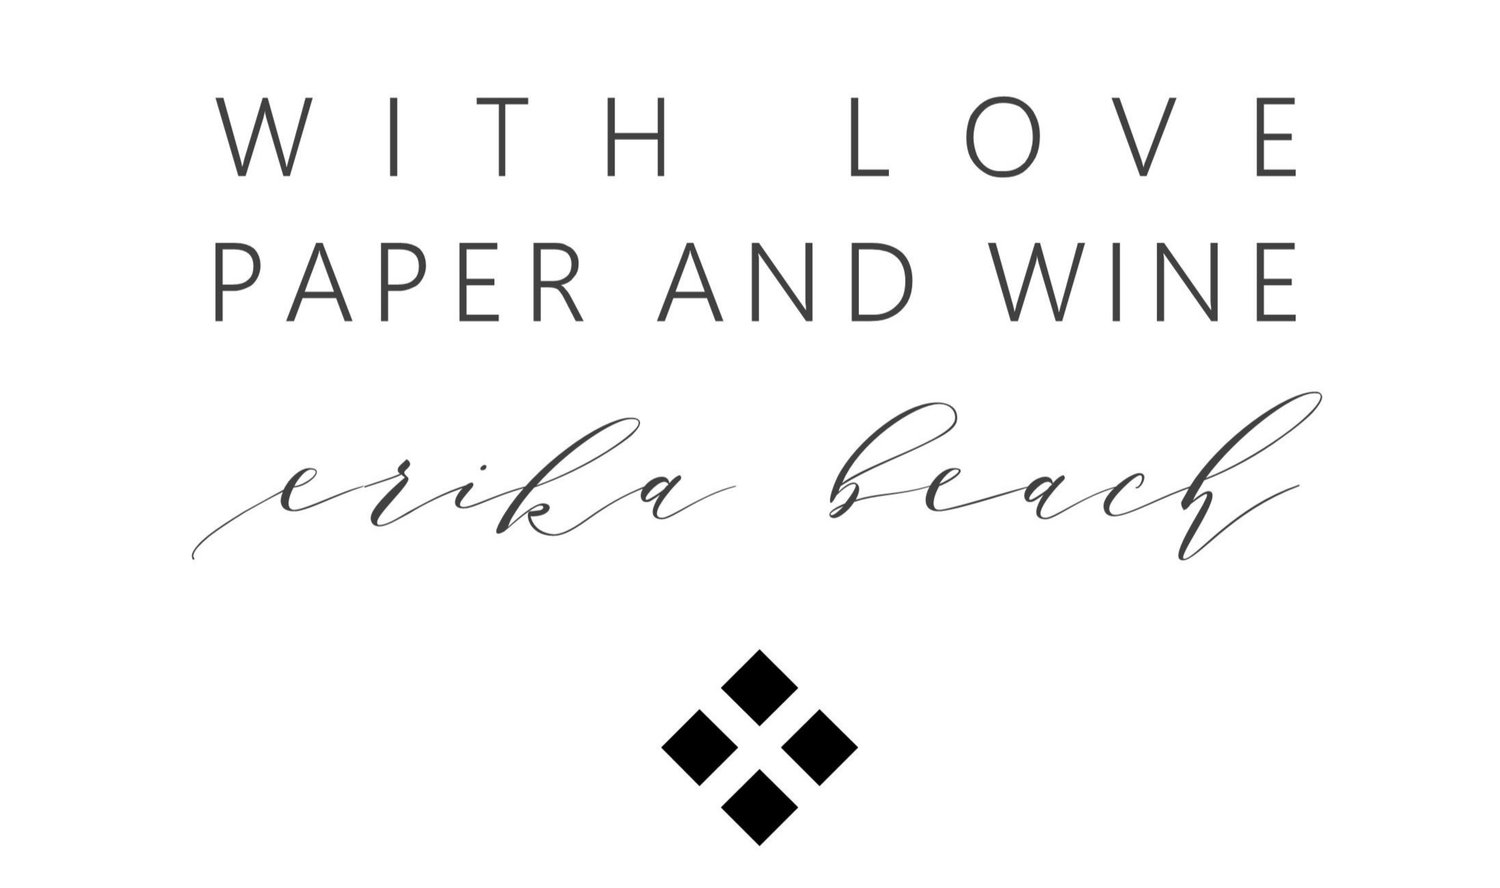 With Love, Paper and Wine